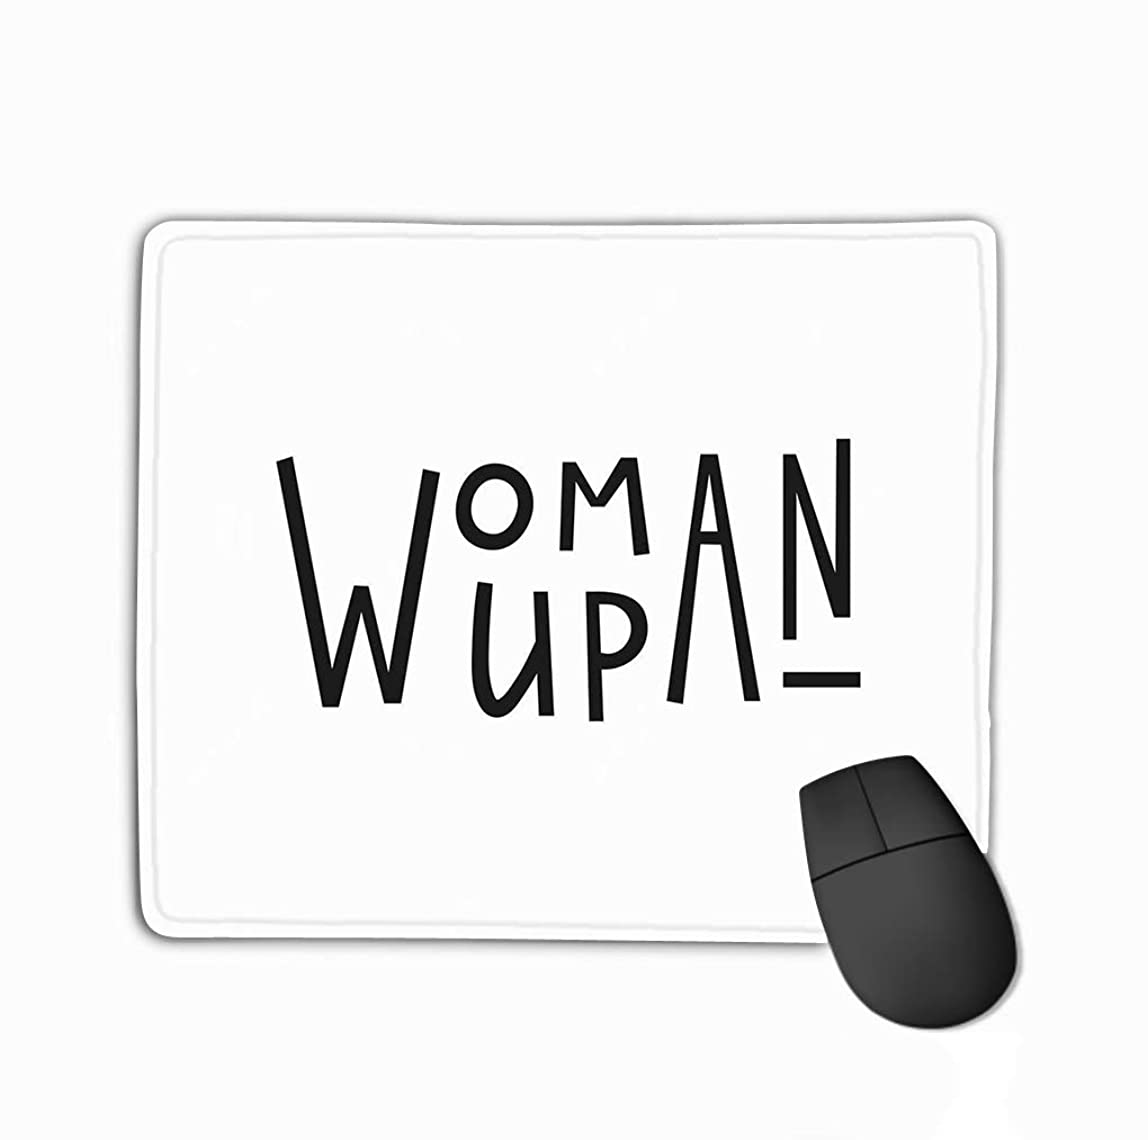 Mouse Pad Woman up Quote Feminist Lettering Calligraphy Inspiration Graphic Design Typography Element Card Rectangle Rubber Mousepad 11.81 X 9.84 Inch dykepii673385